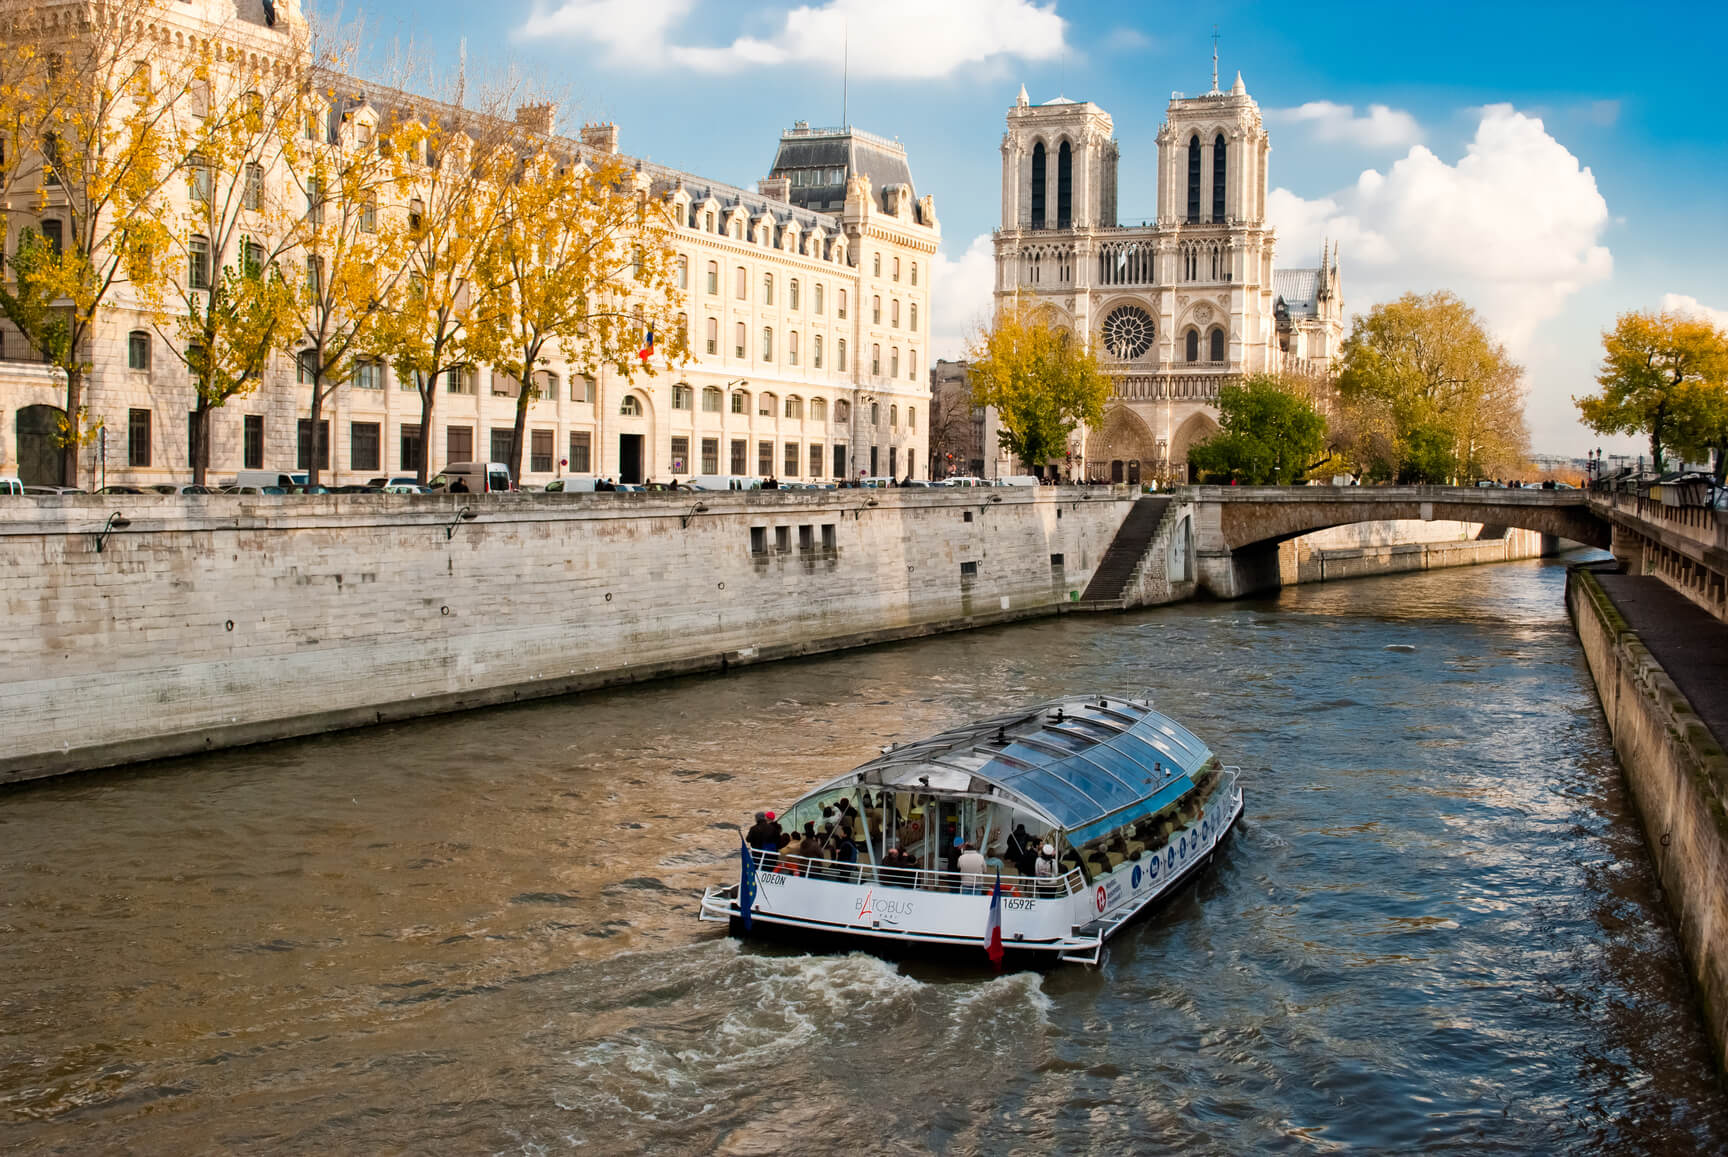 Non-stop from San Francisco to Paris, France for only $368 roundtrip